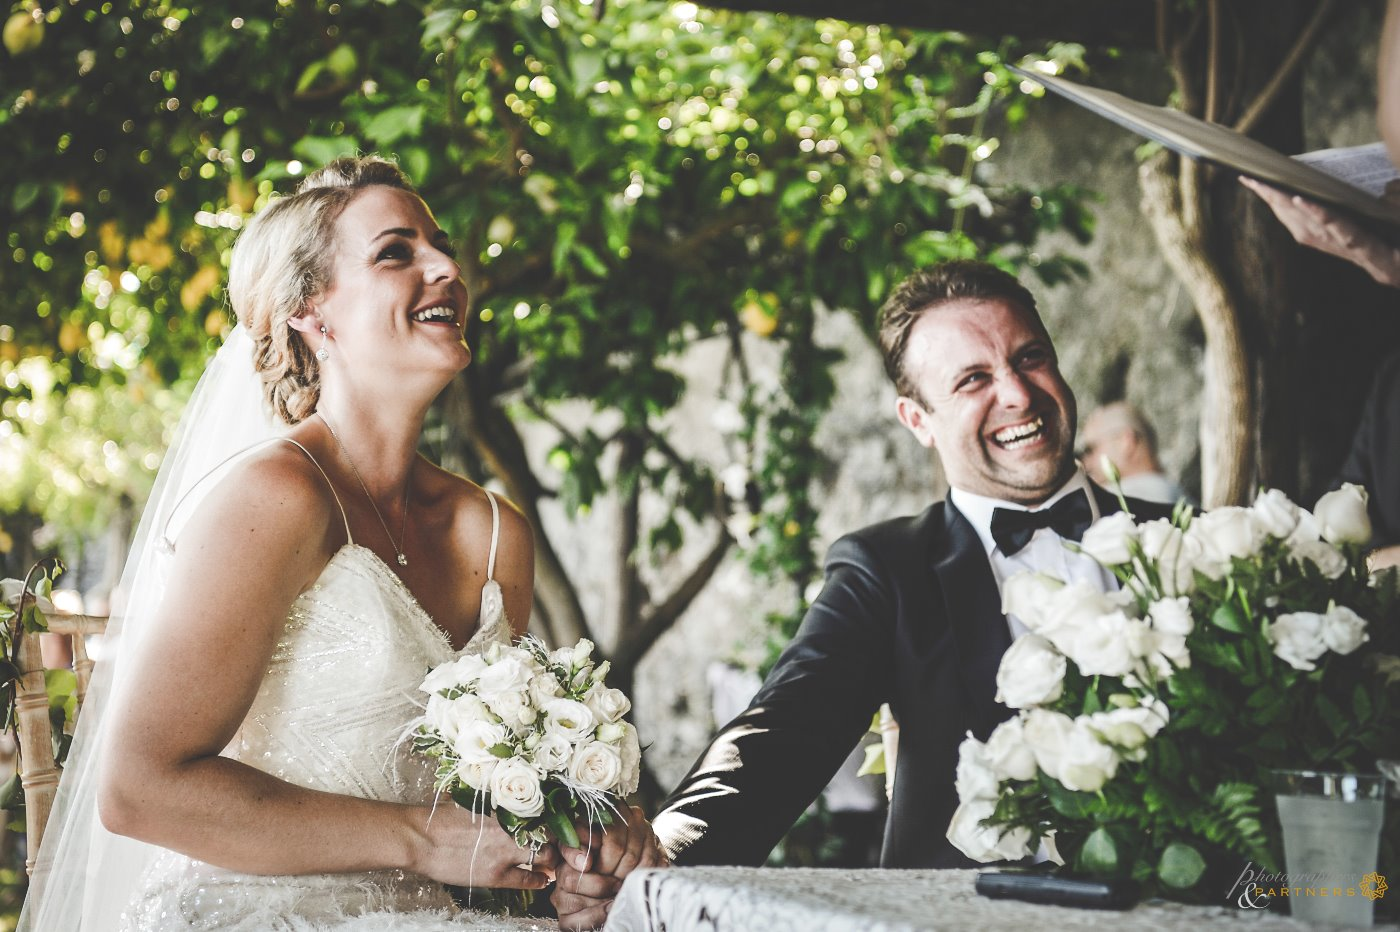 photographer_weddings_ravello_14.jpg